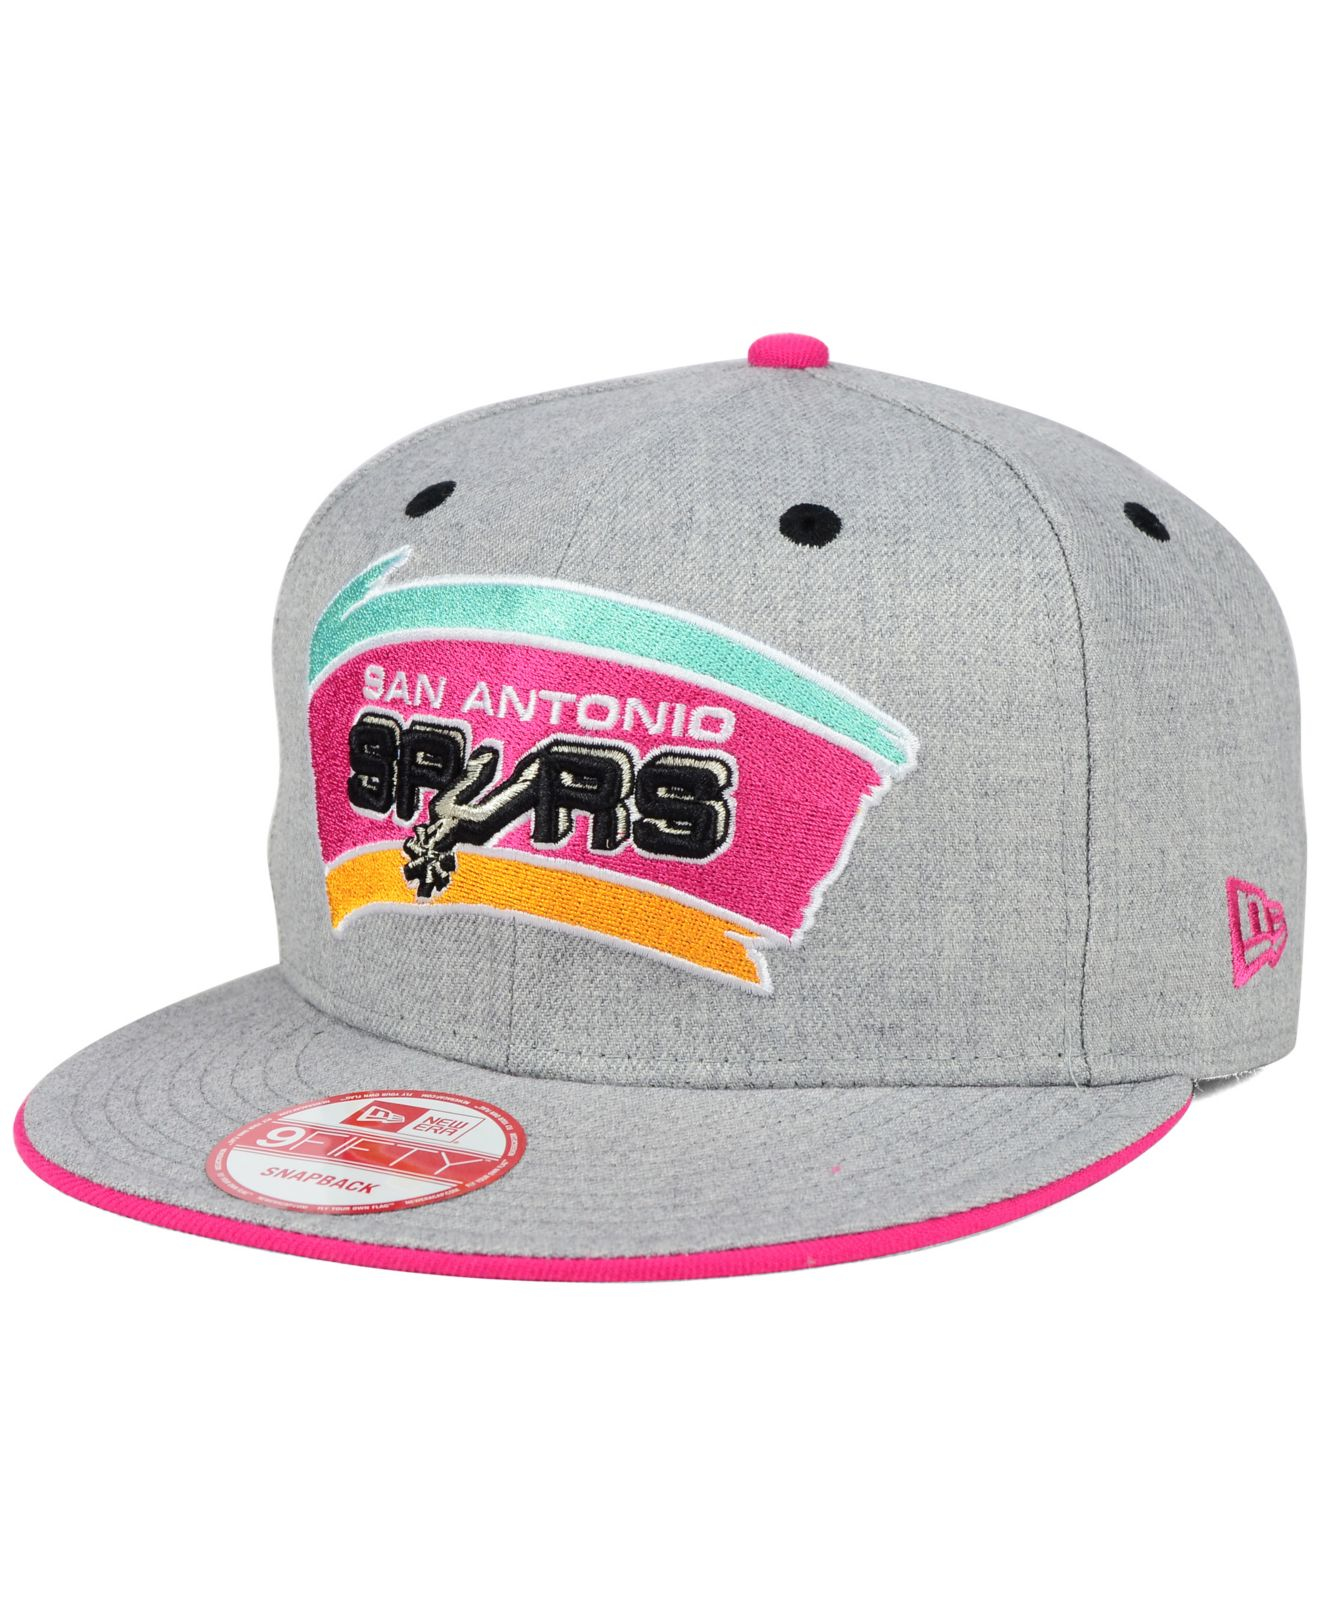 separation shoes b147a f80c5 ... australia lyst ktz san antonio spurs heather 9fifty snapback cap in gray  for men 73497 8b220